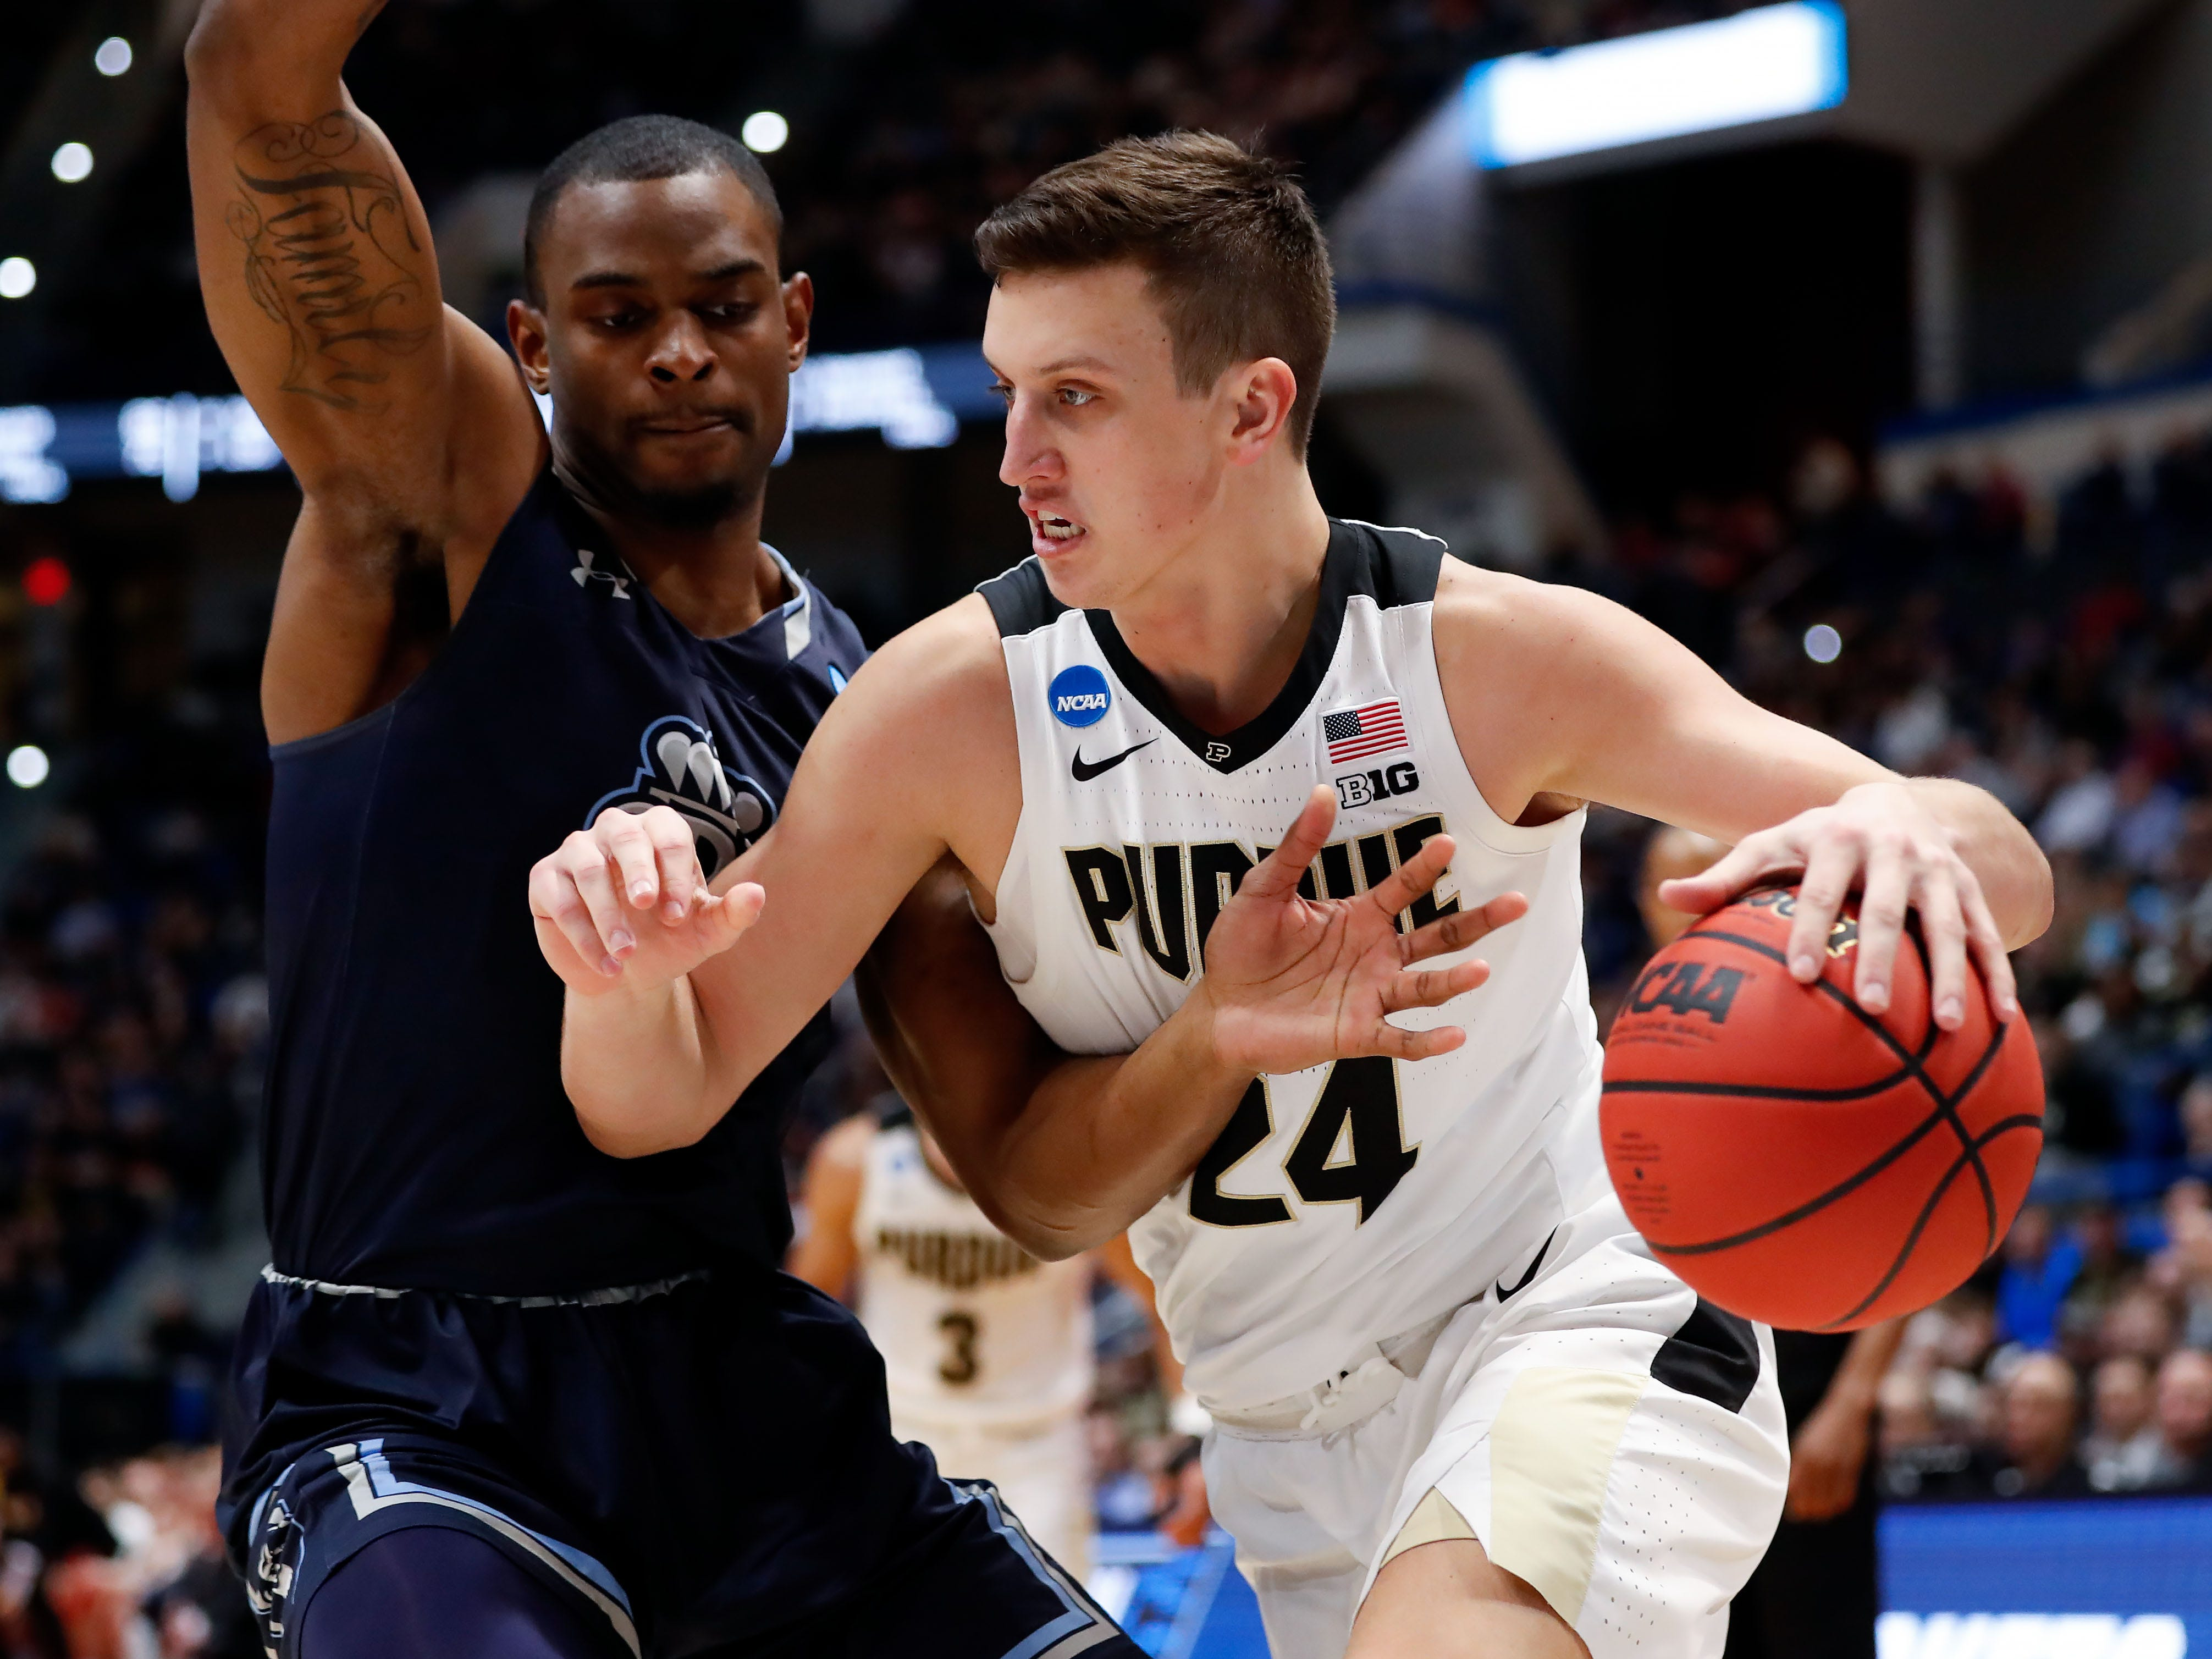 Purdue Boilermakers forward Grady Eifert (24) drives against Old Dominion Monarchs forward Aaron Carver (13) during the first half of a game in the first round of the 2019 NCAA Tournament at XL Center.